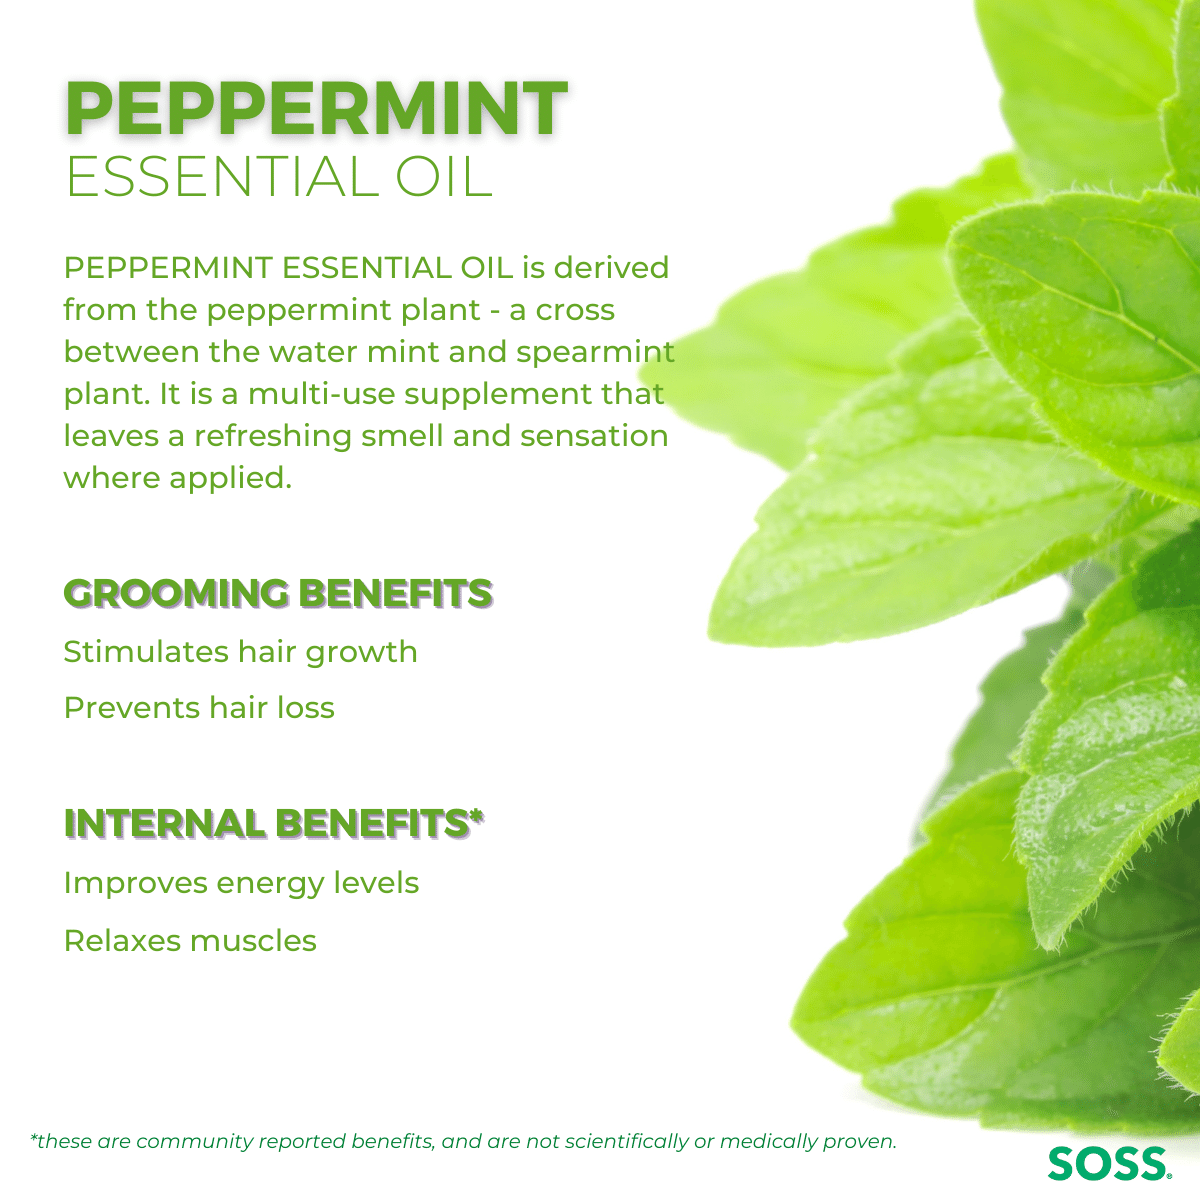 Peppermint Essential Oil can increase circulation and promote hair growth.